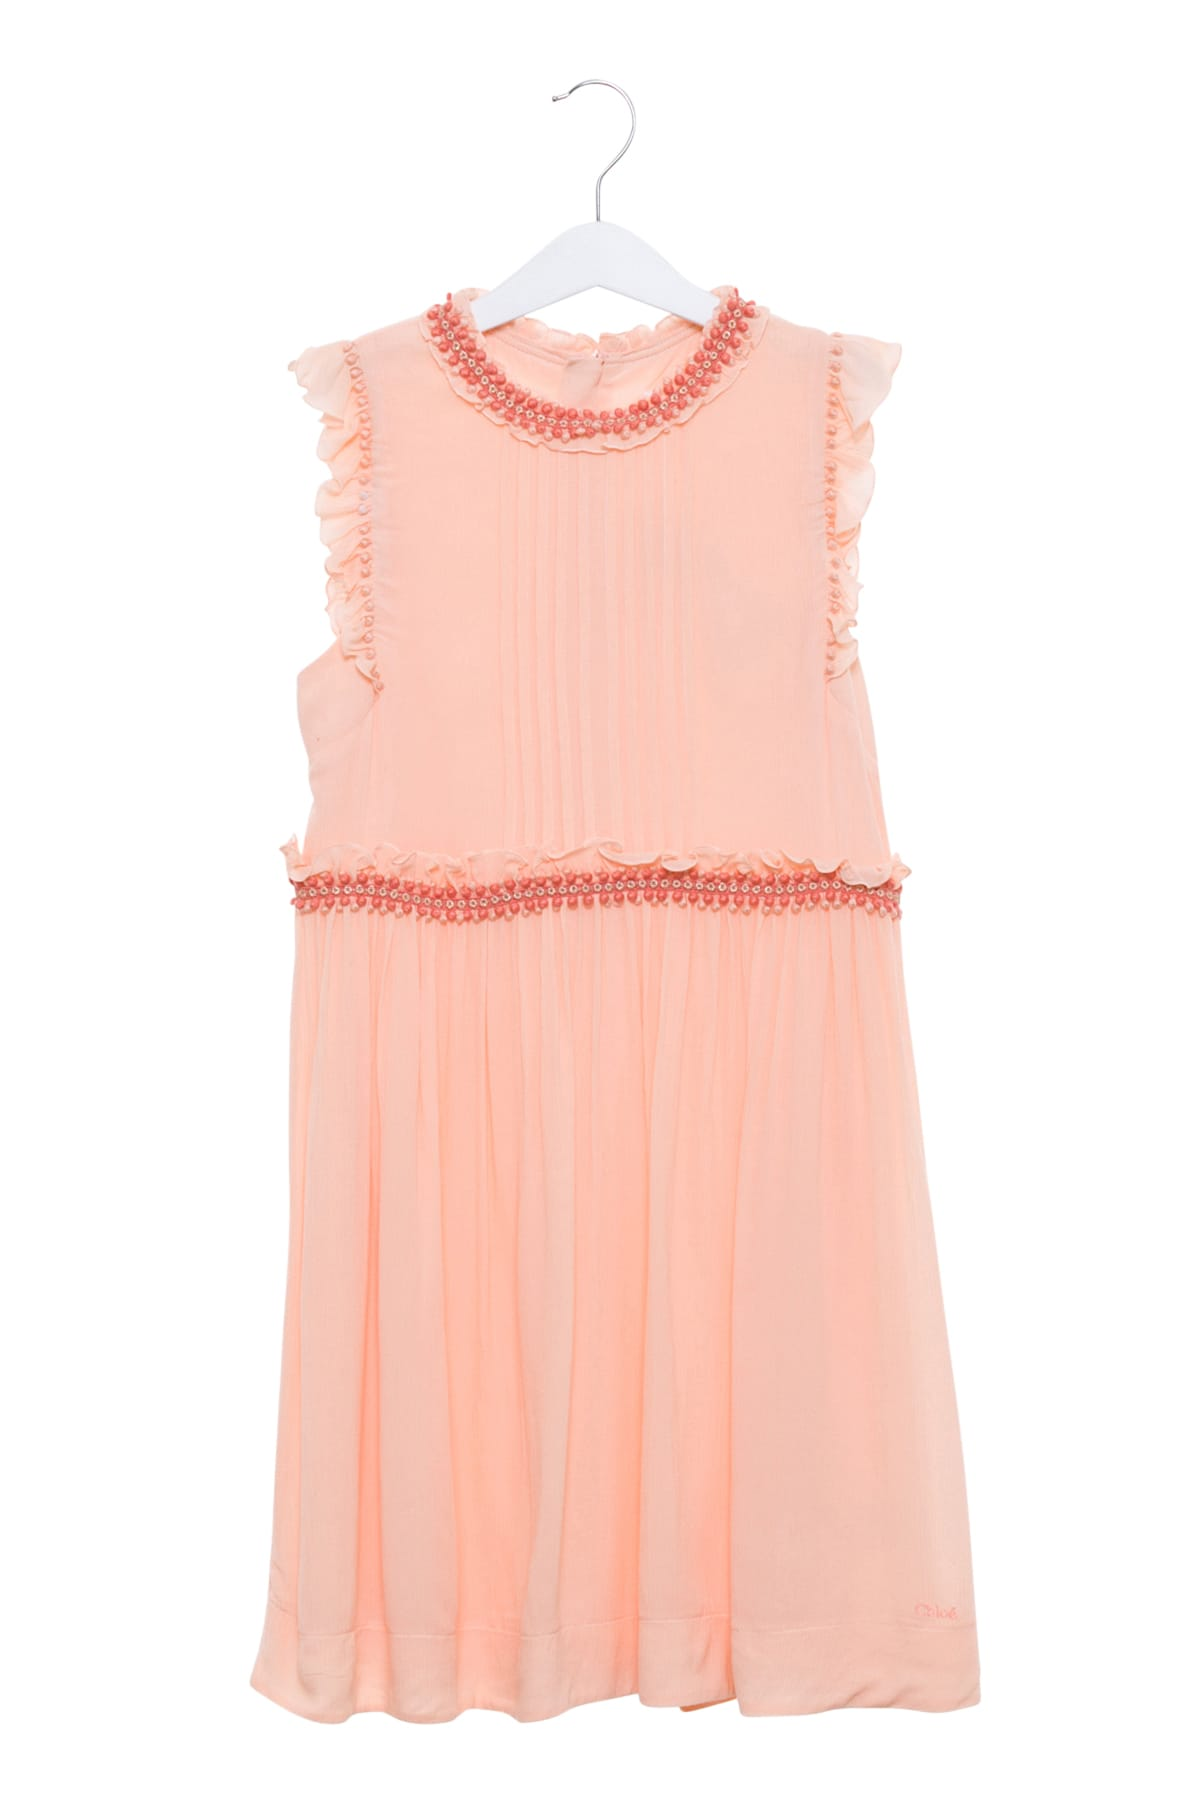 Chloé Draped Dress With Ruffles And Applications